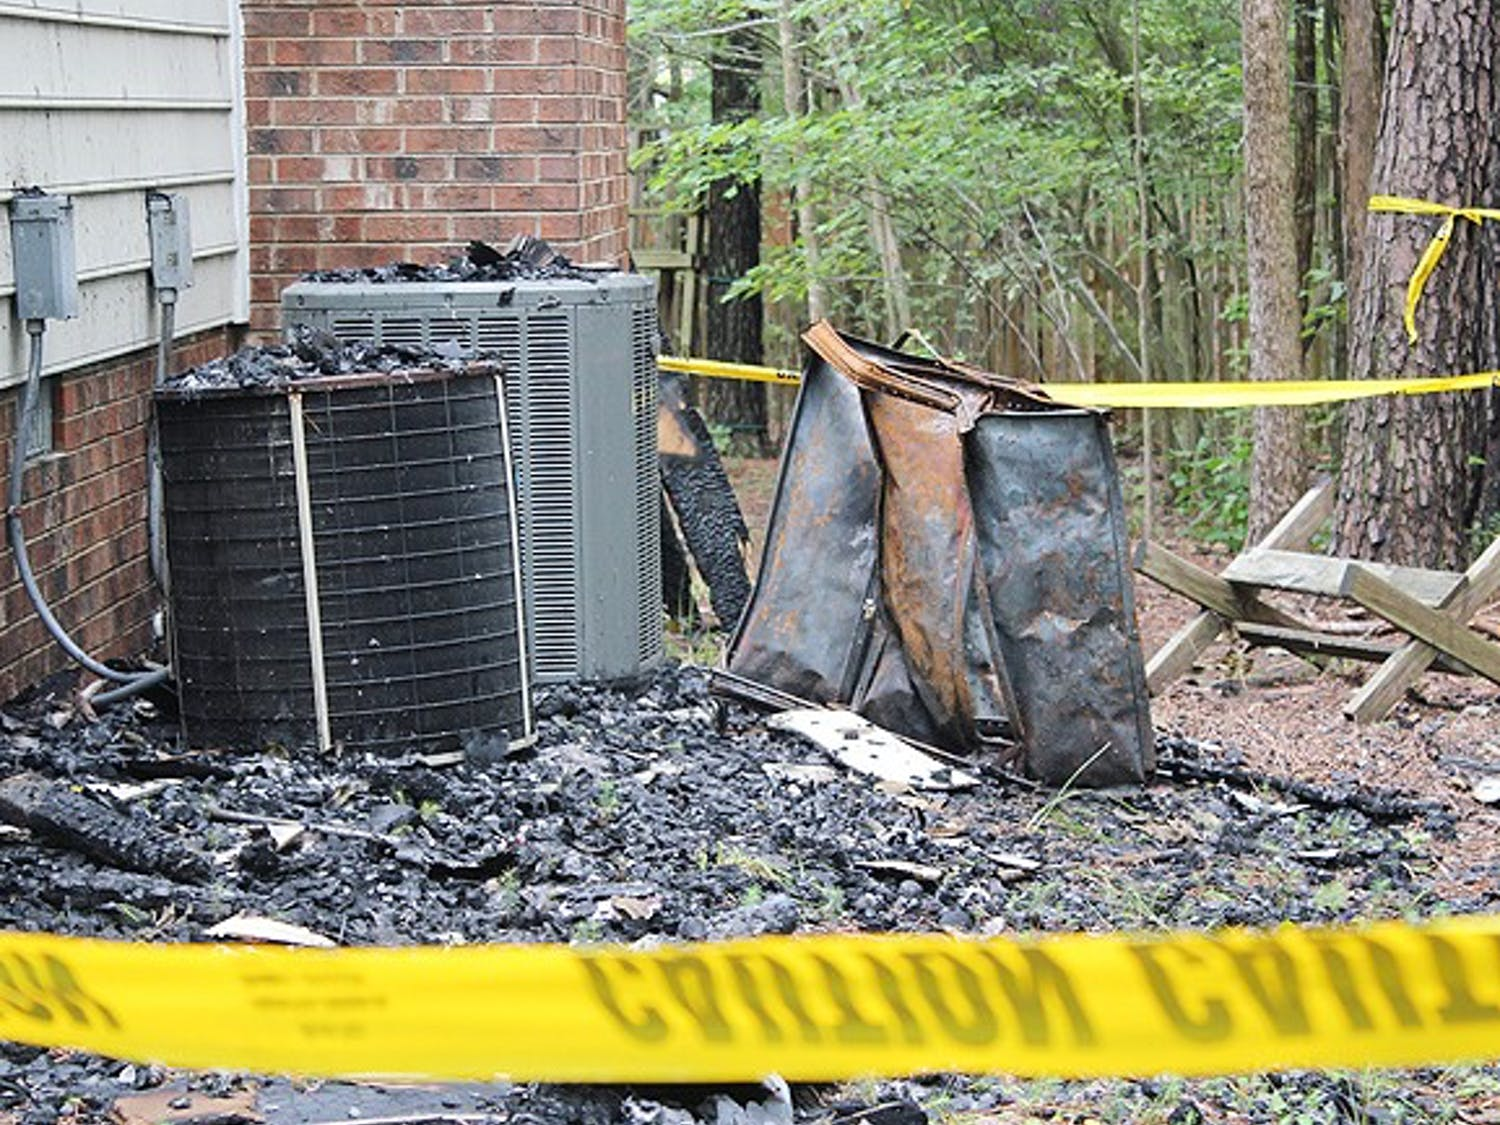 114 Pineoak Court suffered fire damage Sunday night, resulting in $150,000 worth in property damage (check w/ writer on this).